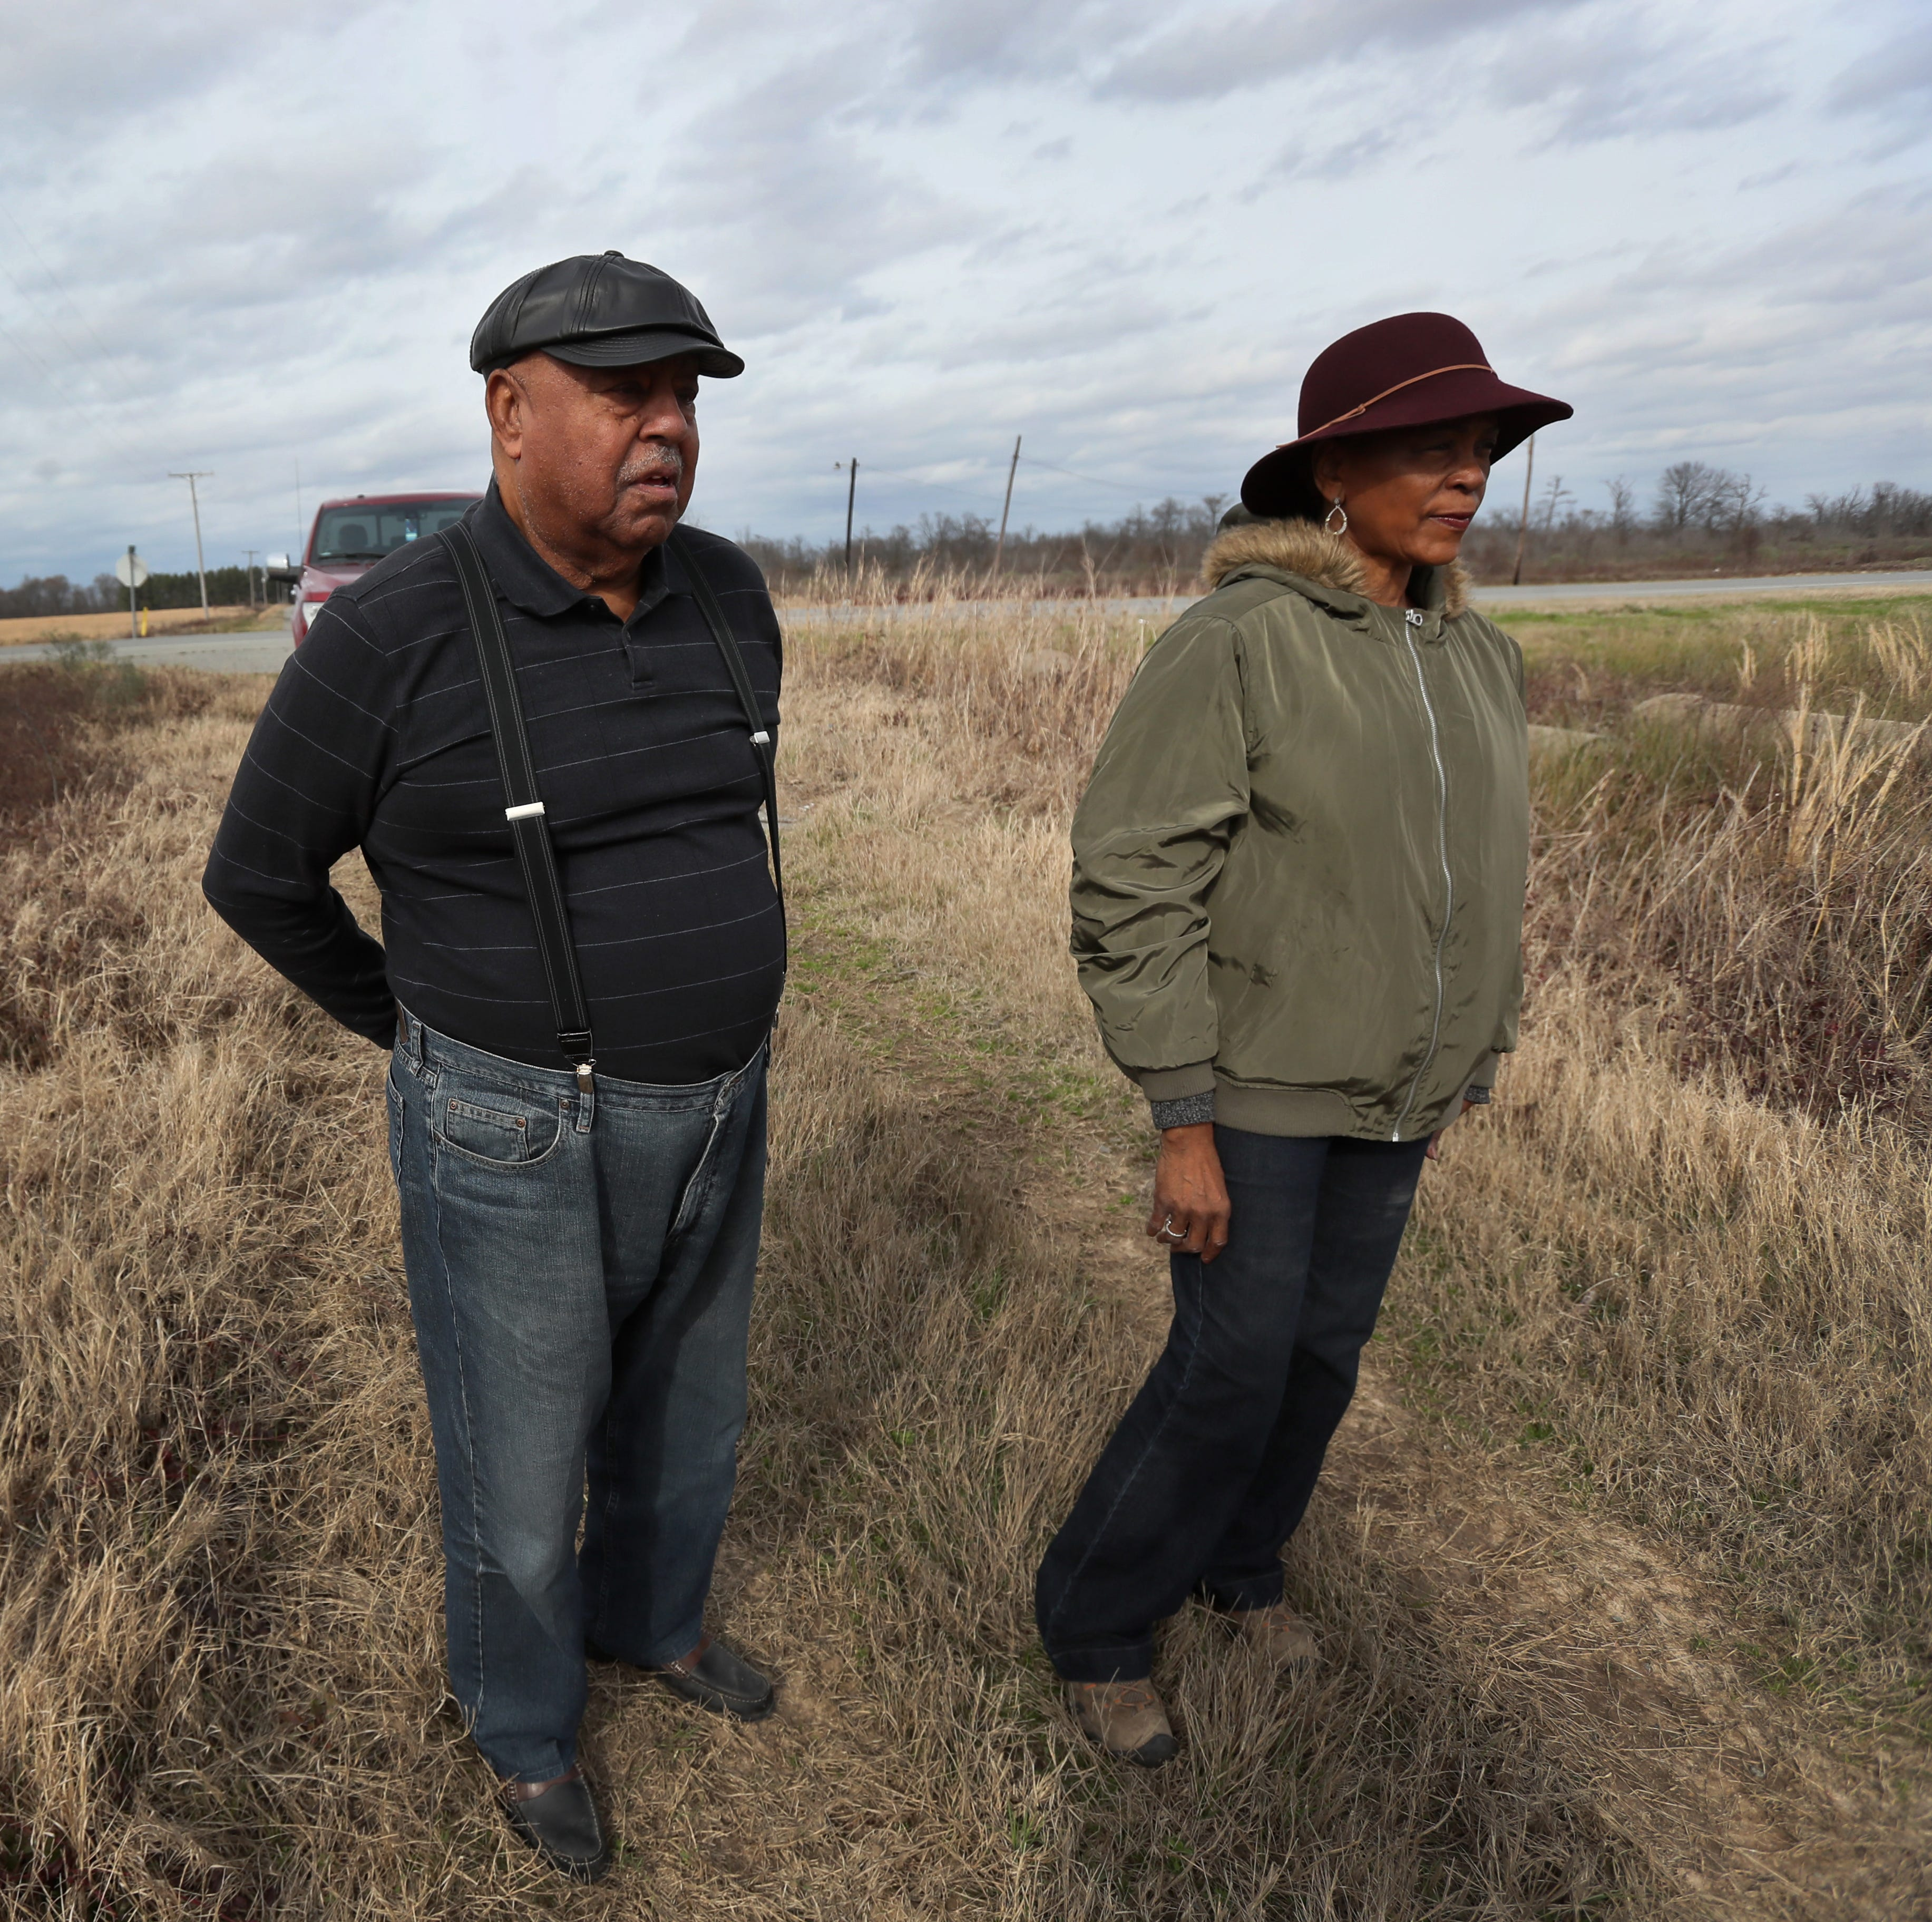 A black family grew its farm against the odds, until planting a certain brand of seeds